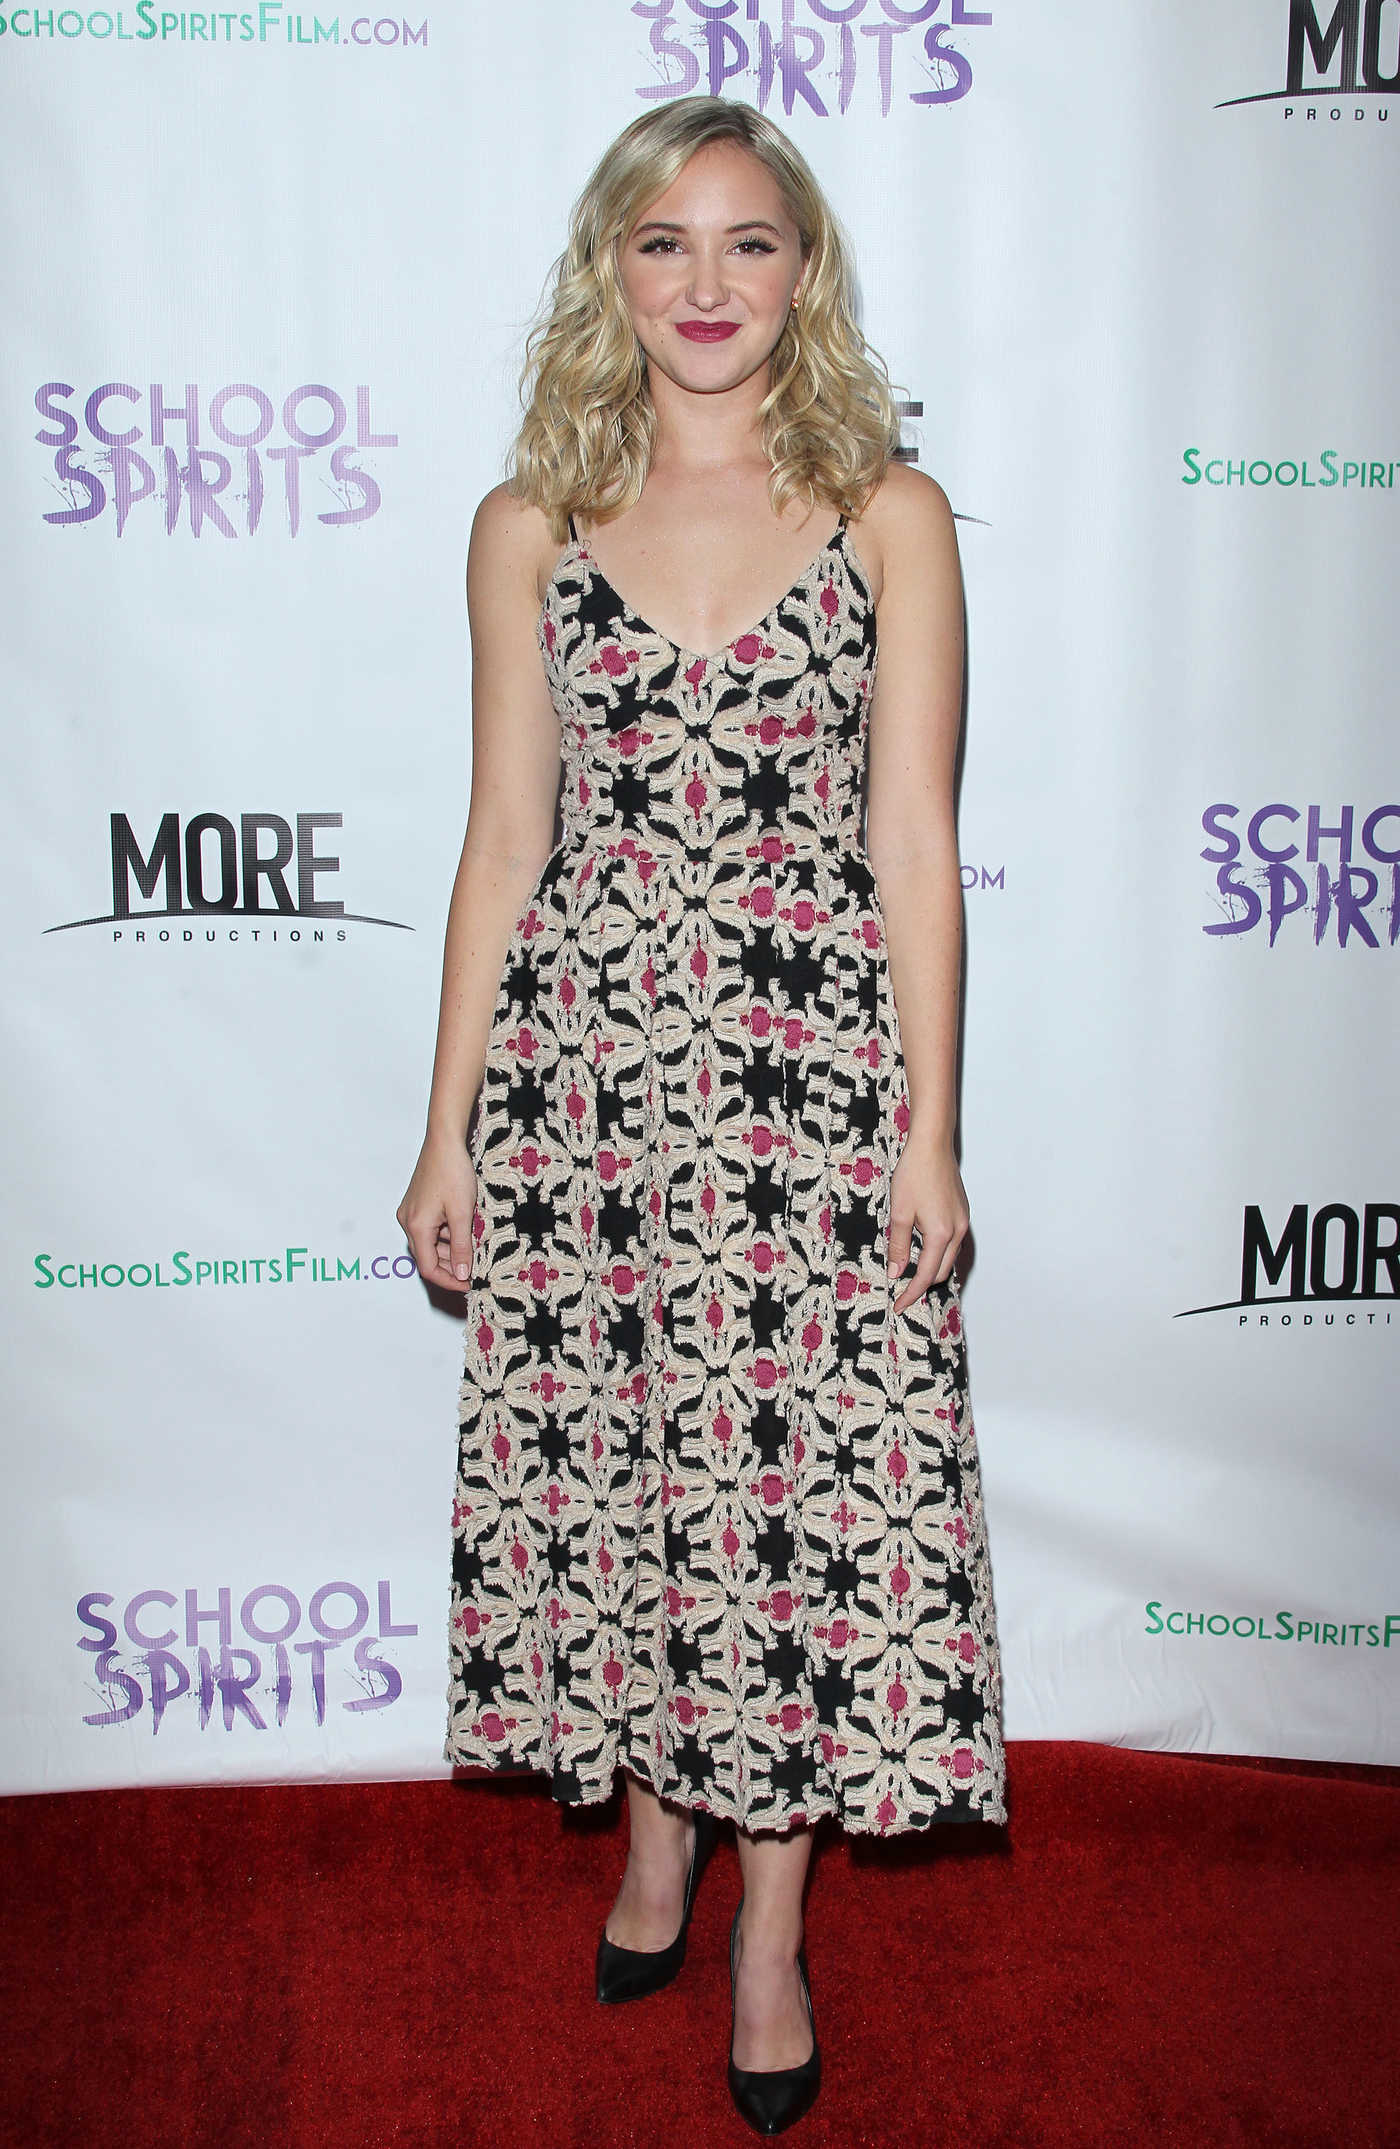 Audrey Whitby at the School Spirits Premiere in Los Angeles 10/06/2017